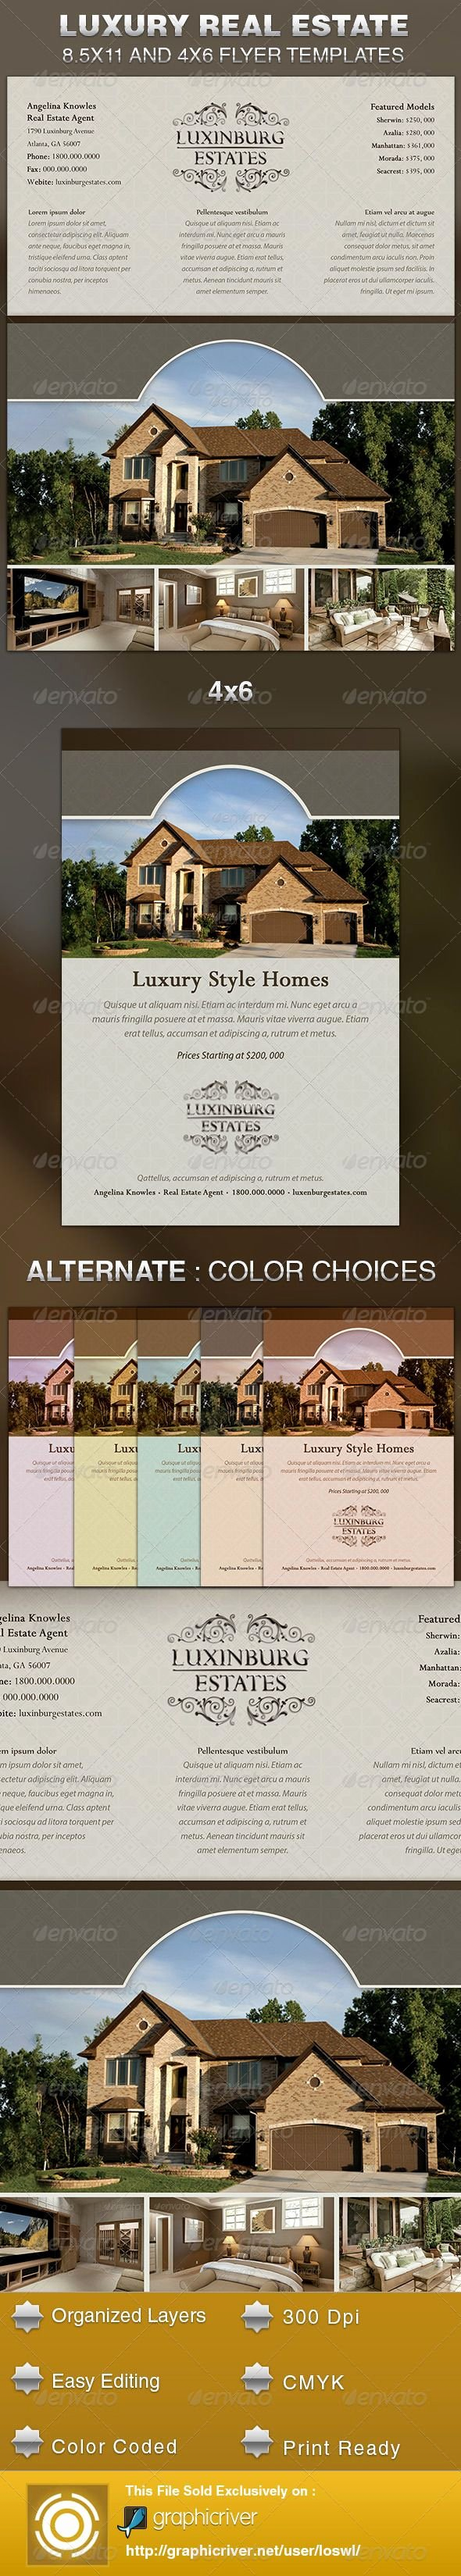 Luxury Real Estate Flyers Beautiful the Luxury Real Estate Flyer Template is sold Exclusively On Graphicriver It Can Be Used for